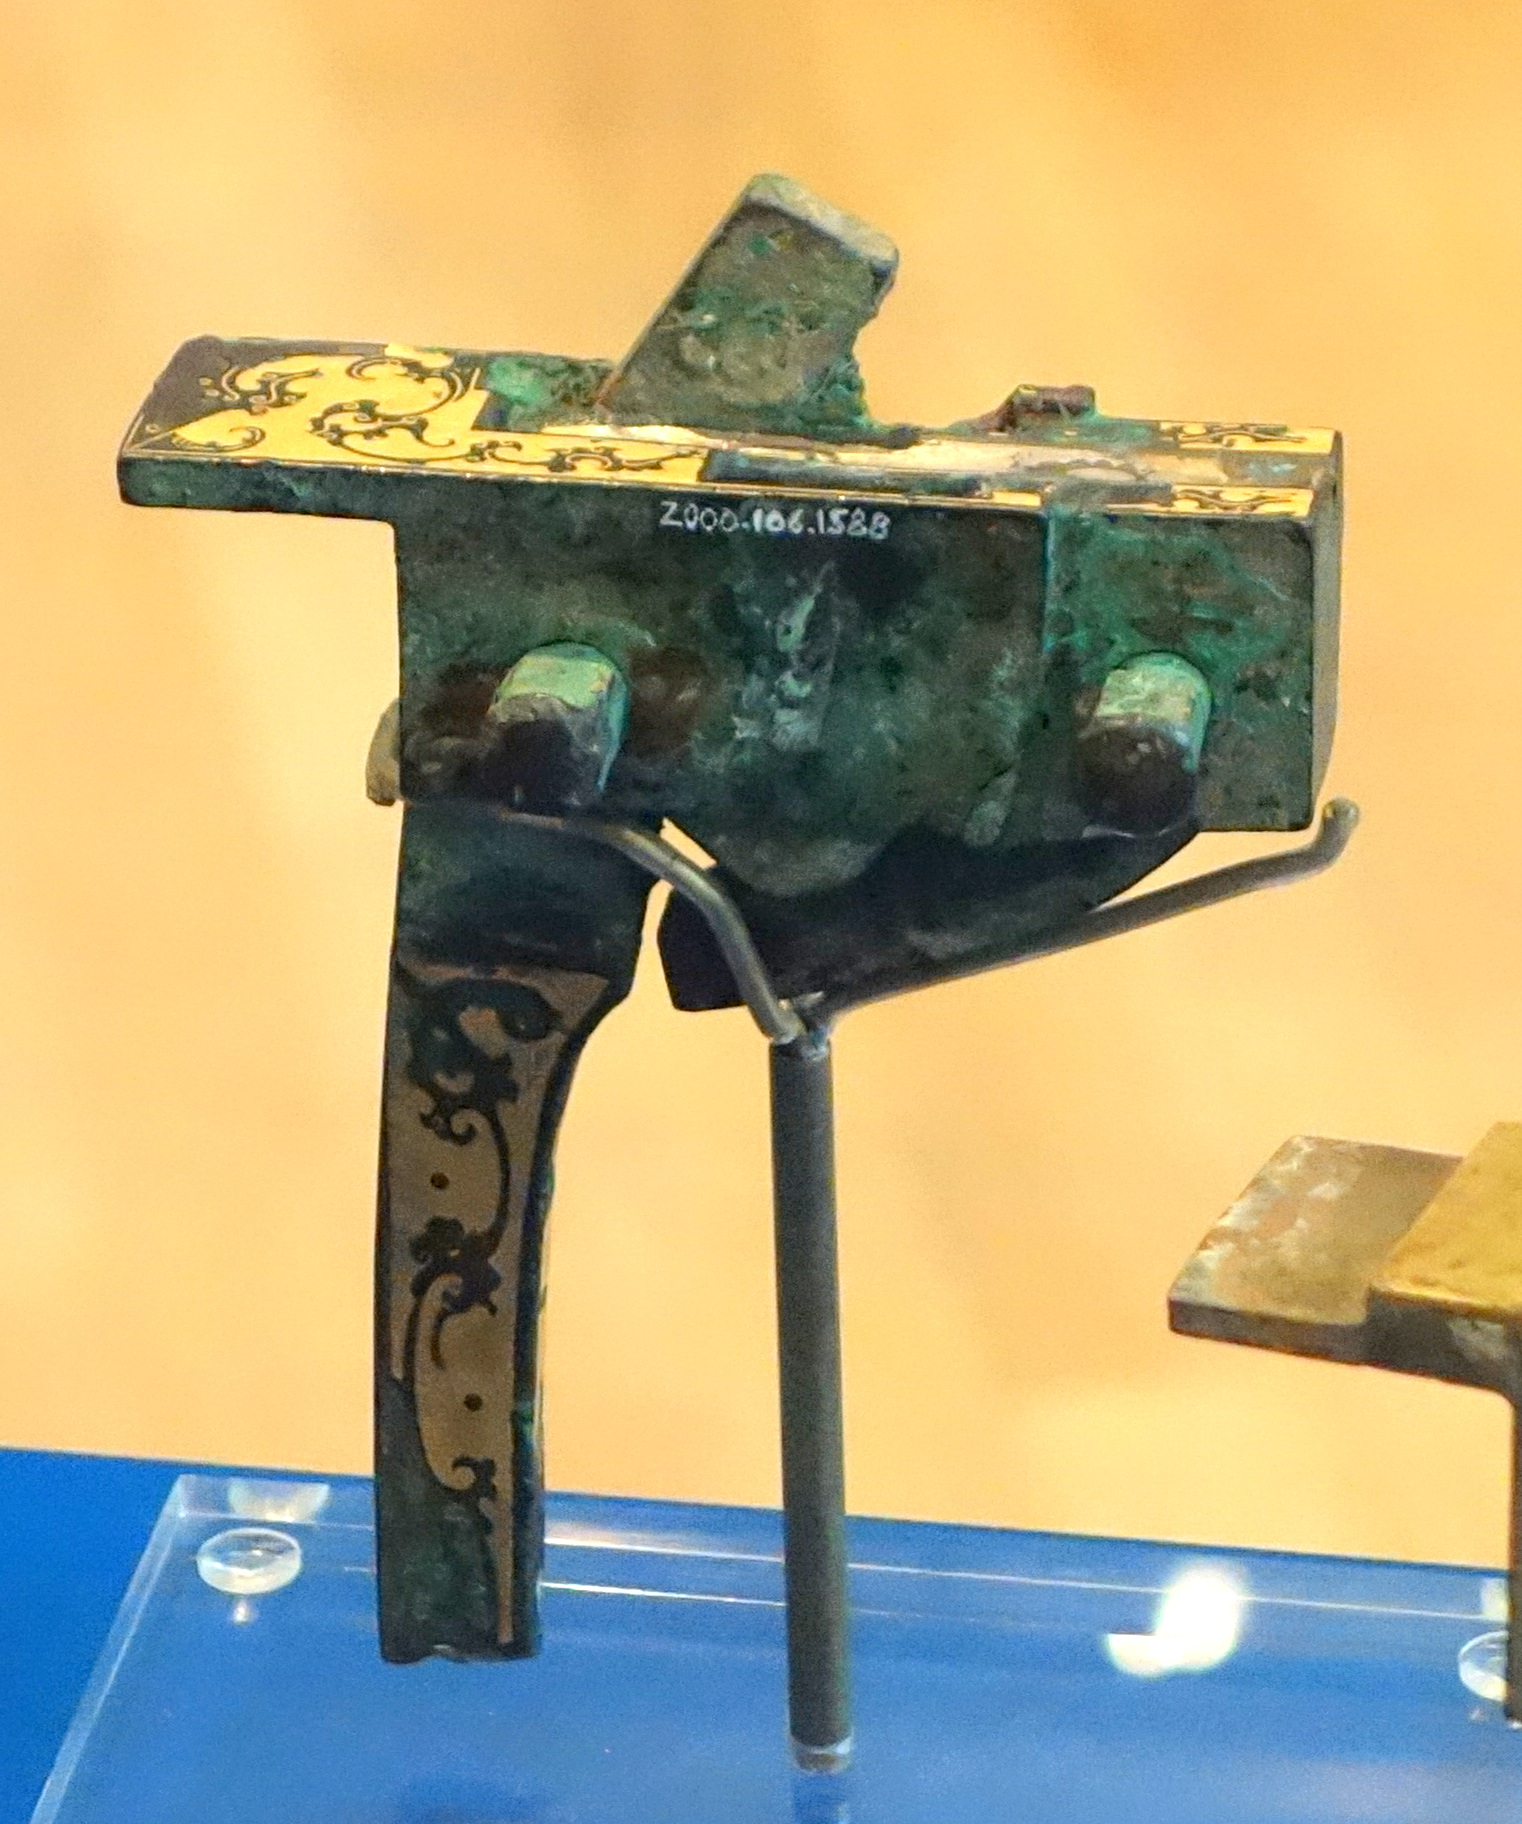 File:Crossbow mechanism, China, Han dynasty, 206 BC - 220 ...